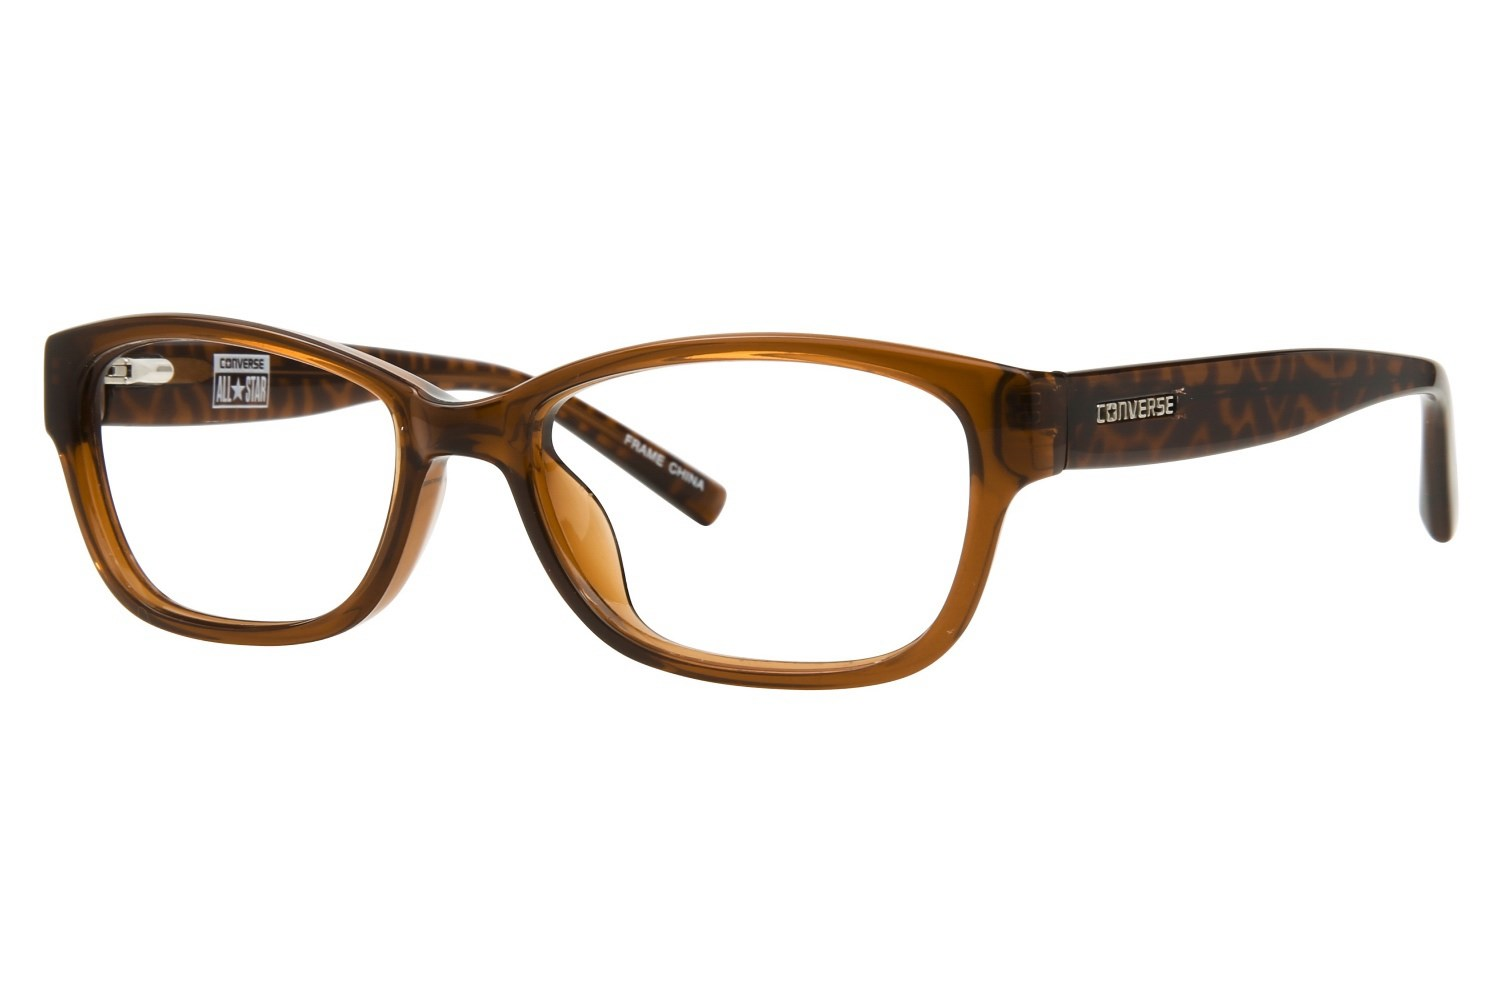 converse-q035-prescription-eyeglasses